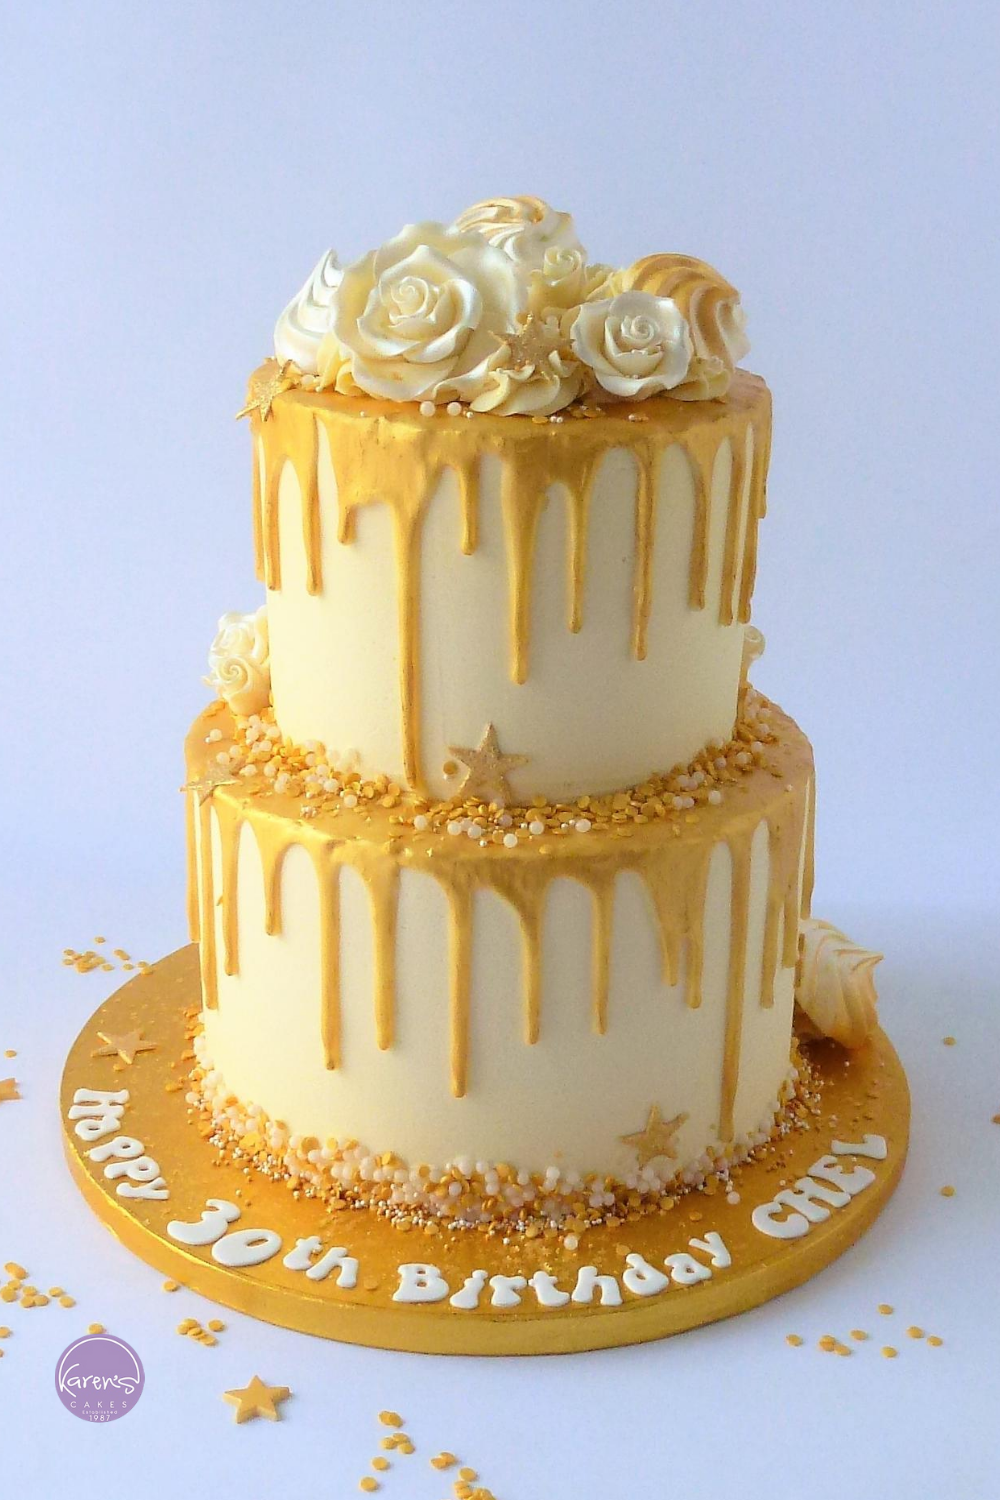 2 Tier White Chocolate With Gold Drip Scandalous Karen S Cakes Golden Birthday Cakes Cake Butterscotch Cake